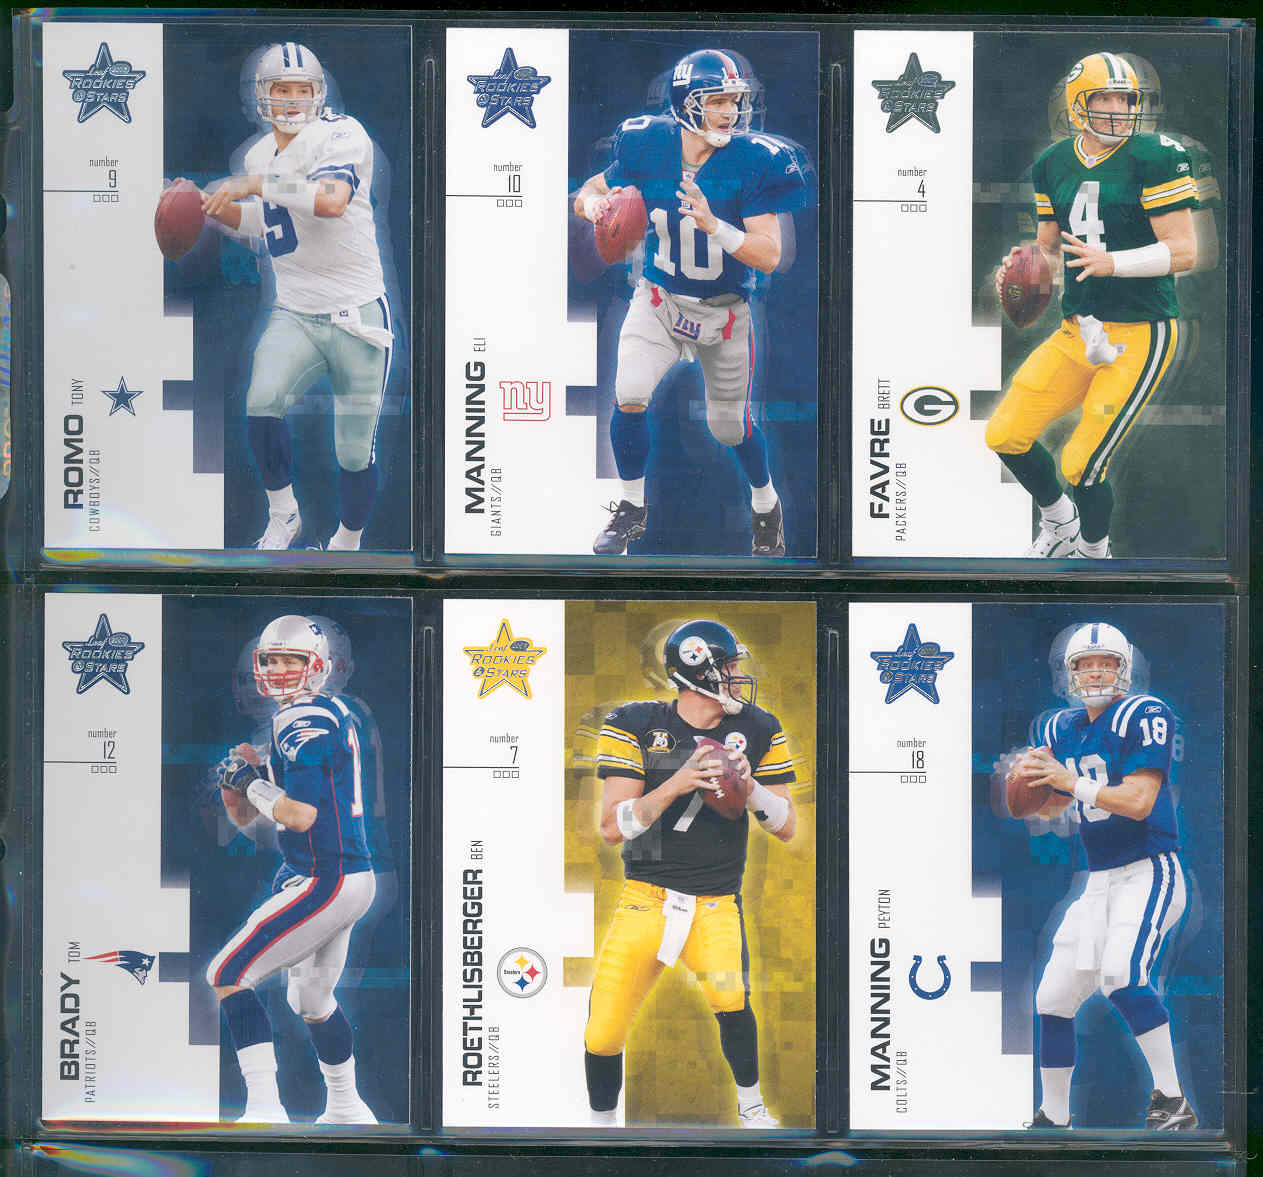 2007 Leaf rookies and stars complete set 1-100 w/ Tony Romo Eli Manning , Peyton Manning , Brett Favre , Ben Rothlisberger , Tom Brady and many others loaded with stars